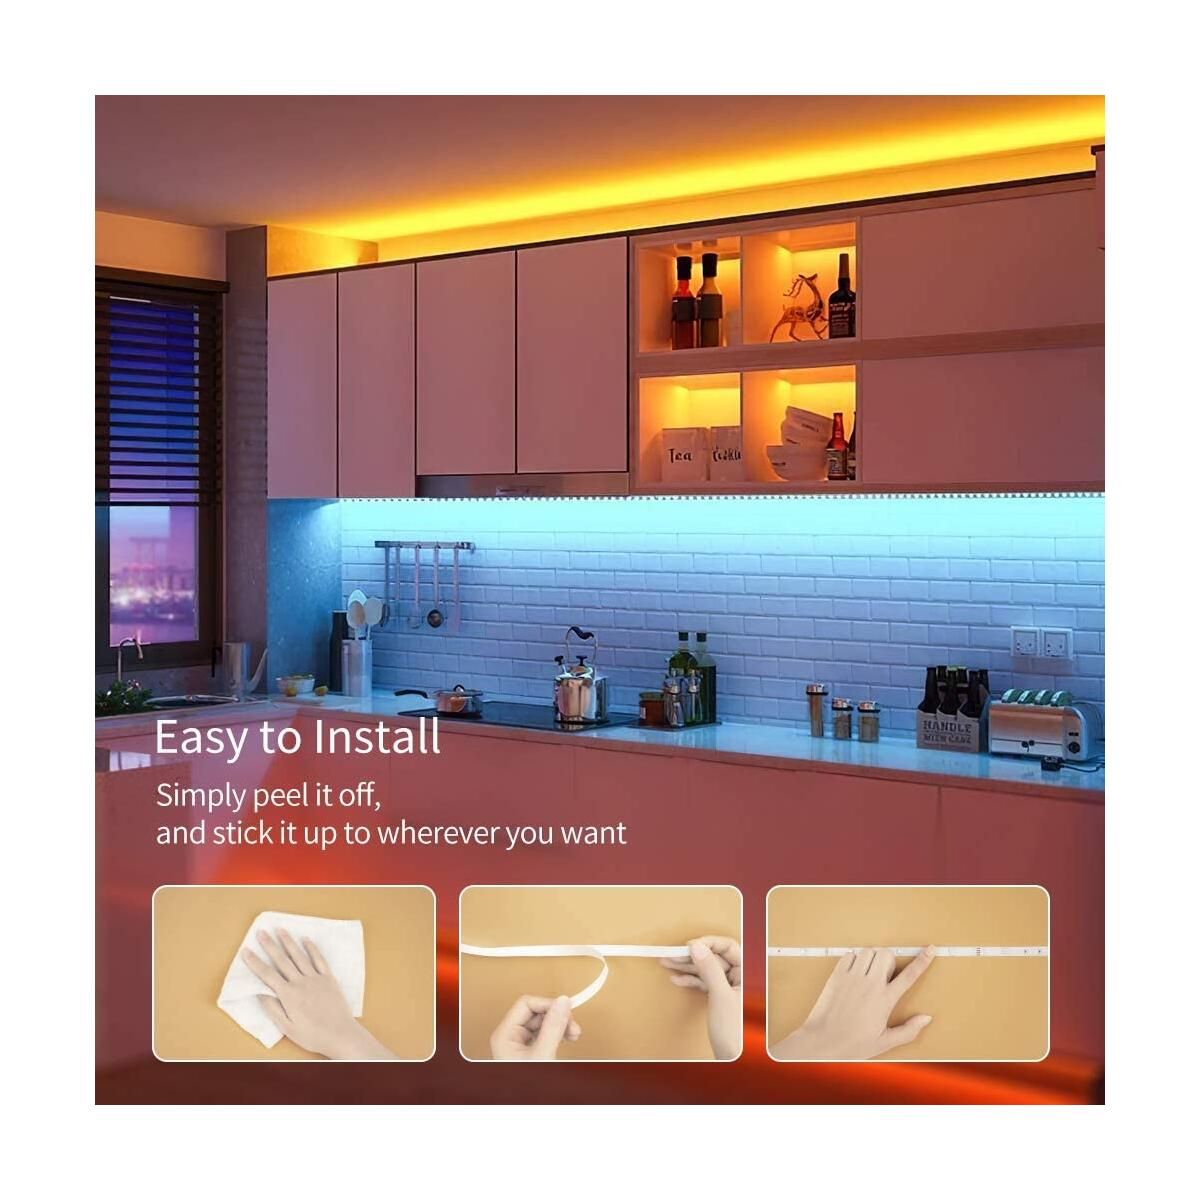 LED Strip Lights 32.8ft, LED Lights for Bedroom SMD 5050 12V, LED Lights RGB Color Changing LED Lights Strip with Remote for Kitchen, Room, Ceiling, Party, Home Decoration, Non-Waterproof